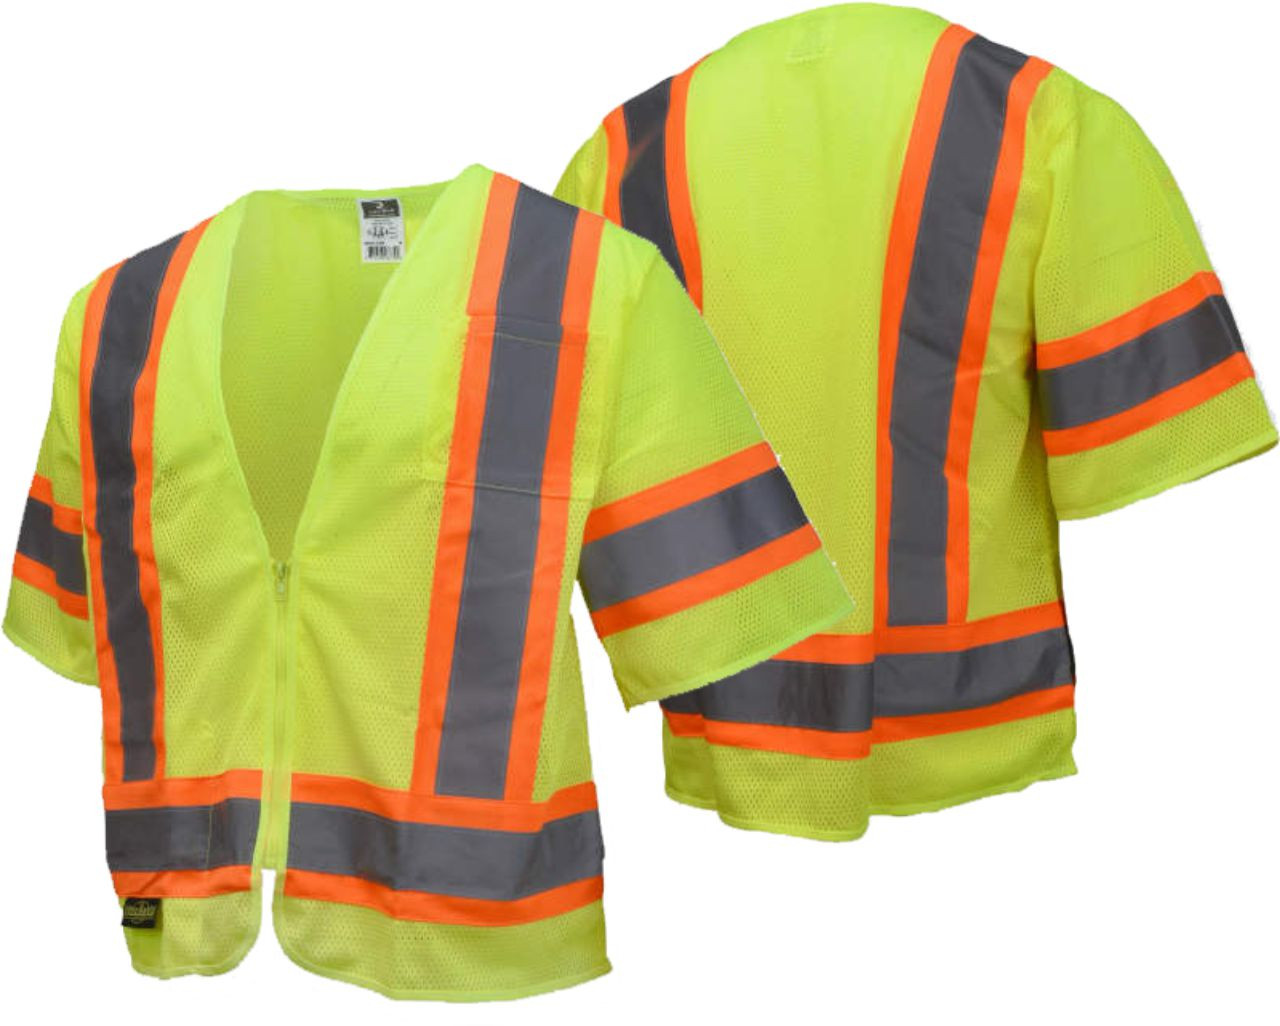 Radians SV22-3 Economy Type R Class 3 Safety Vest with Two-Tone Trim Safety Green Vest with Safety Orange Trim